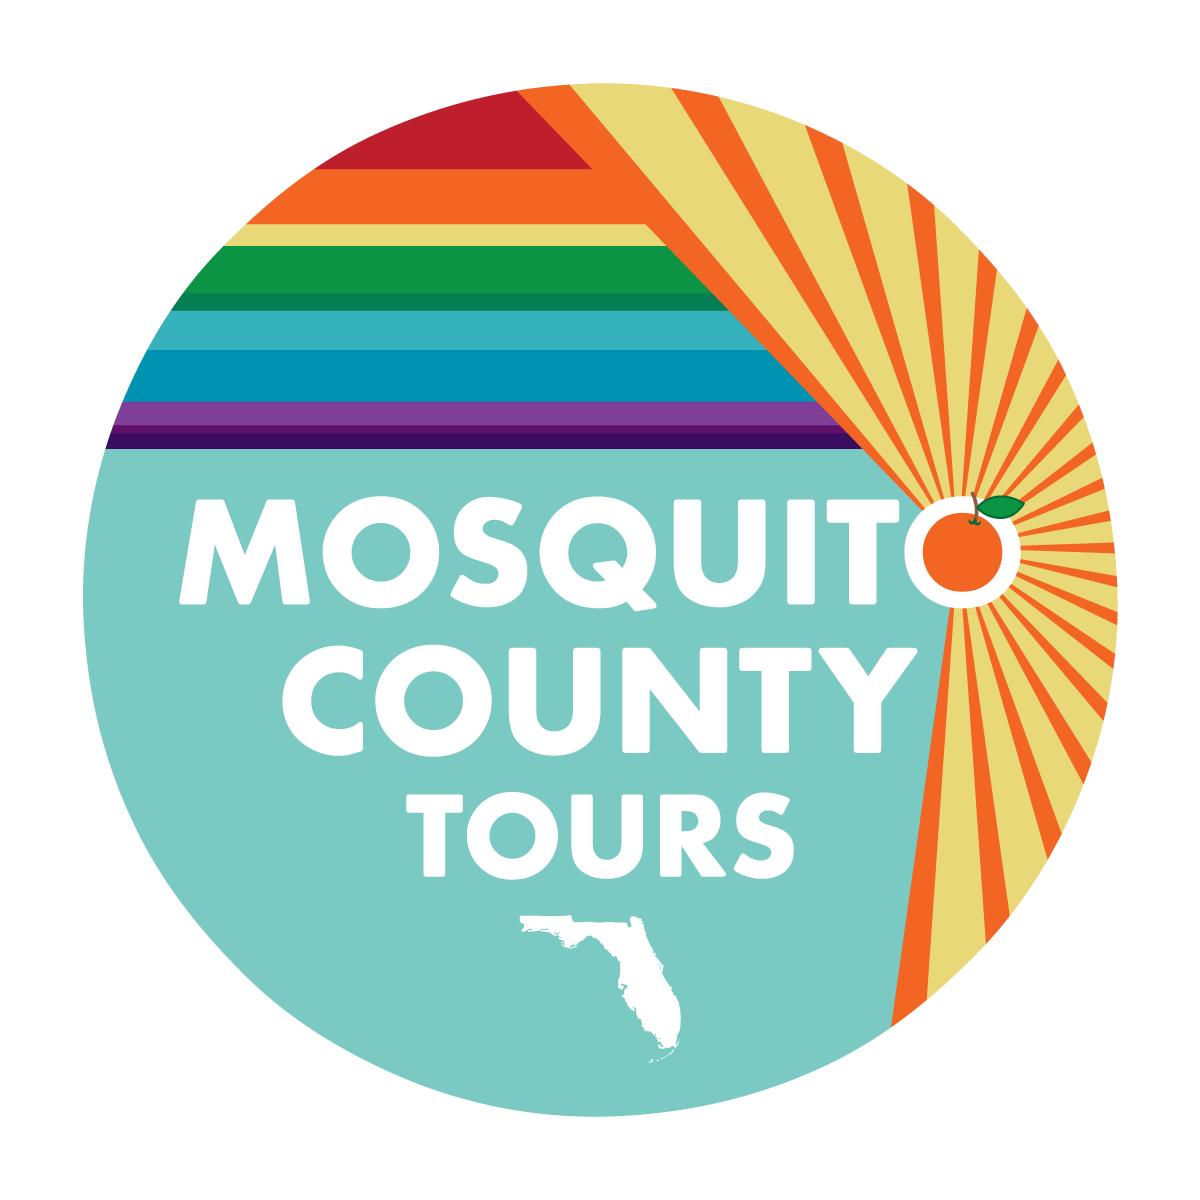 Mosquito County Tours